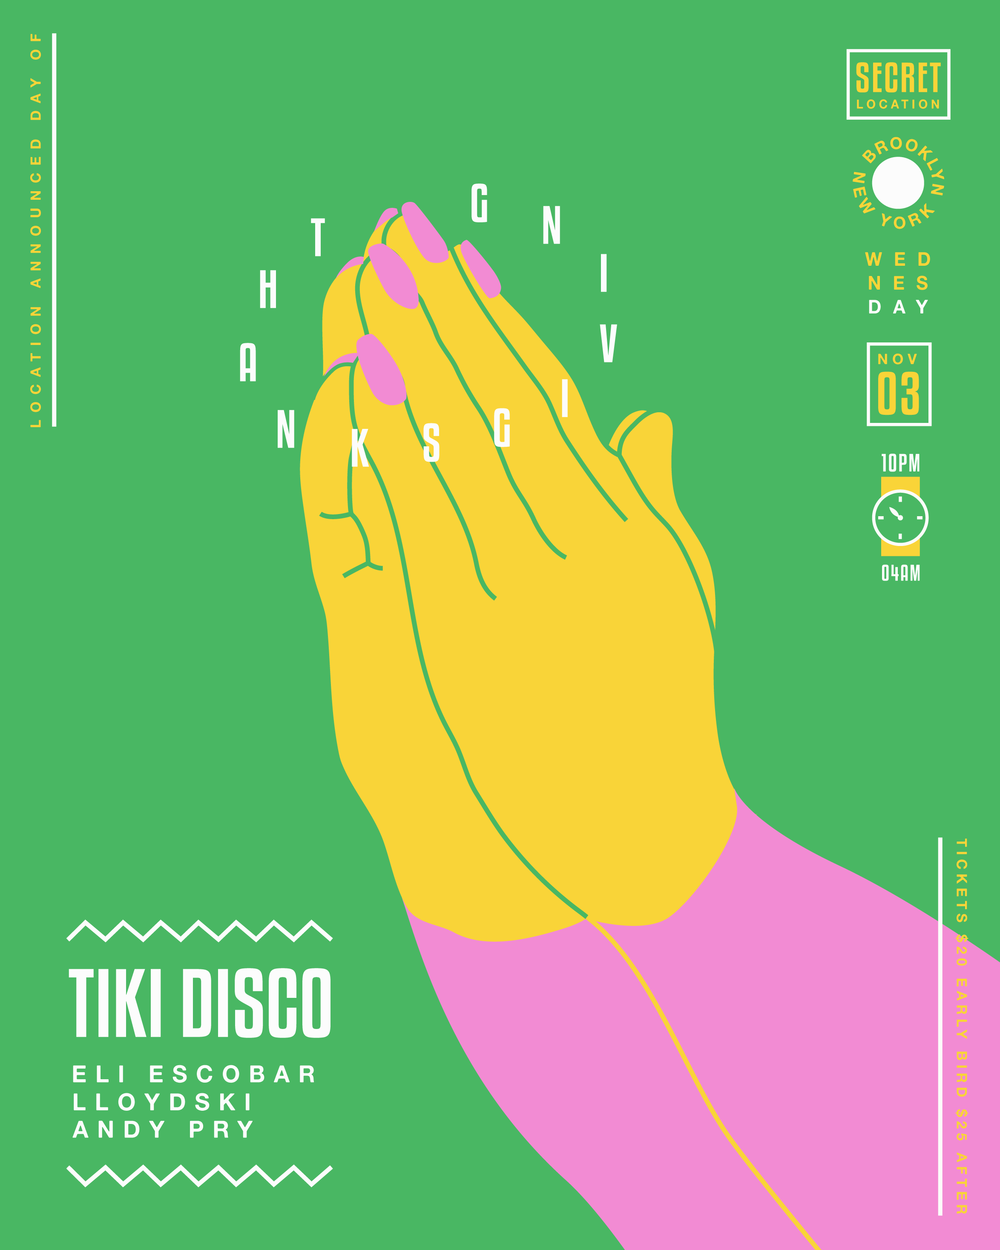 2016-11-01_tikidisco_poster_01 copy.png